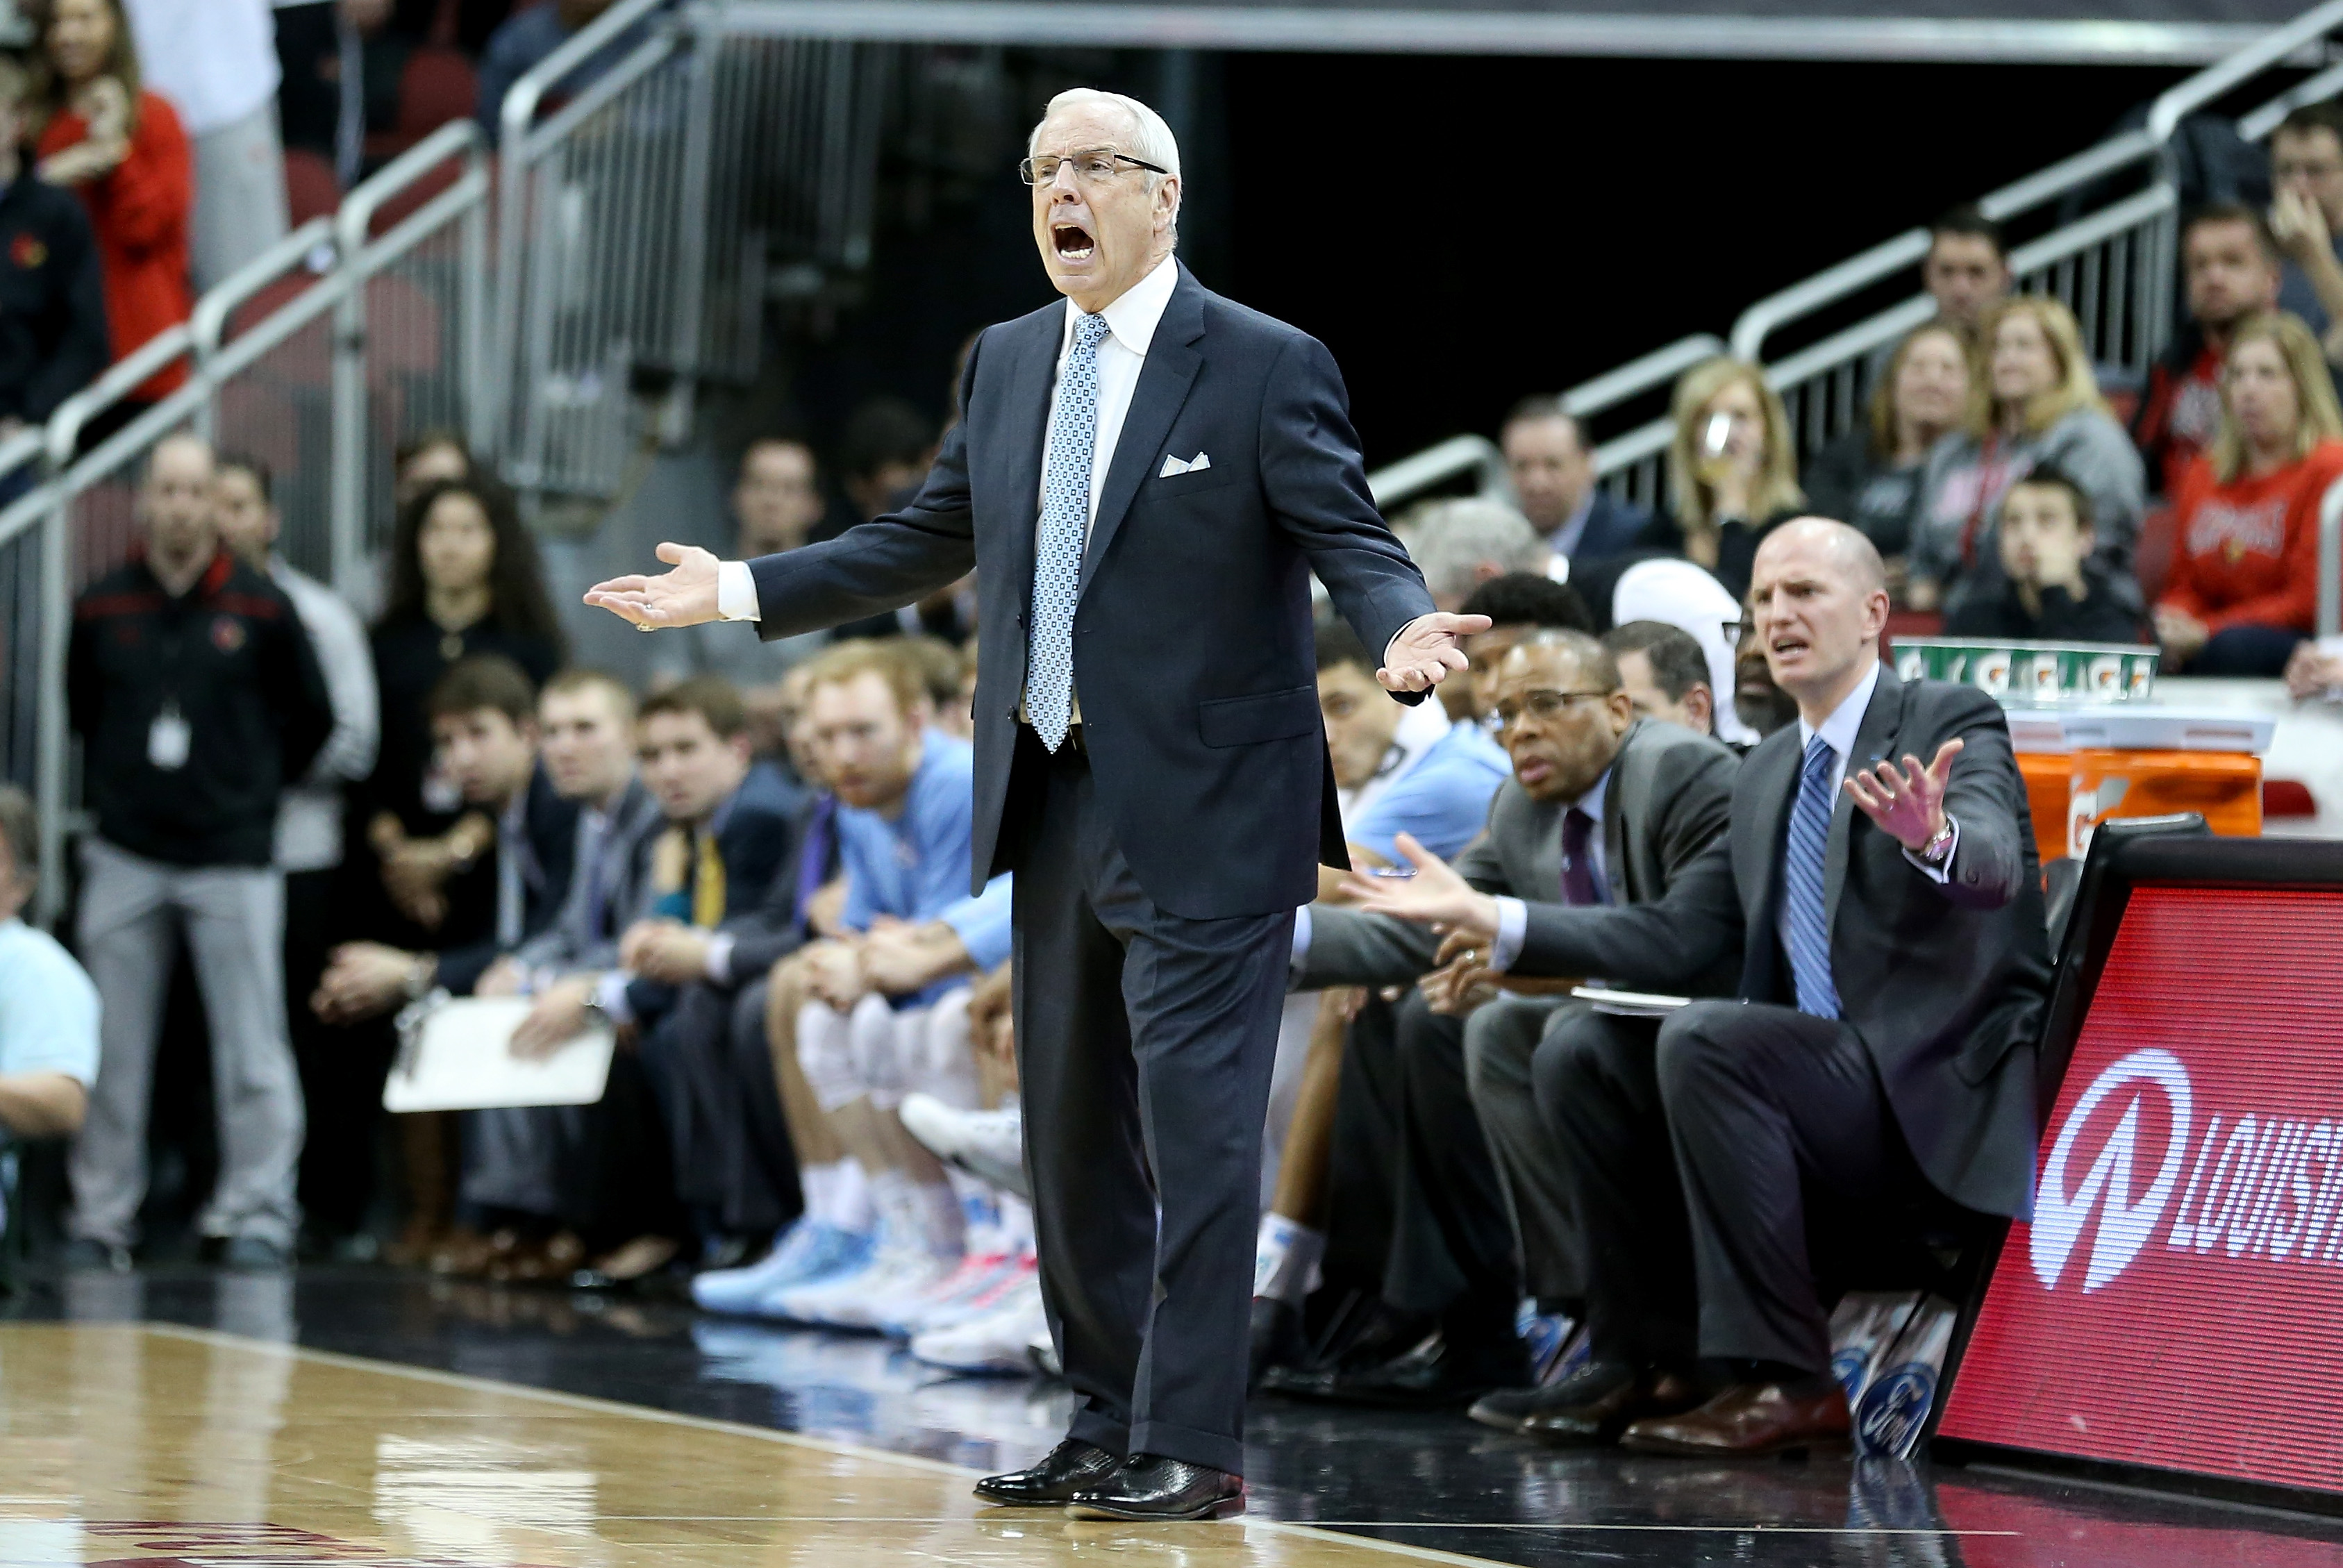 LOUISVILLE, KY - FEBRUARY 01:  Roy Williams the head coach of the North Carolina Tar Heels reacts to an officals call during the game against the Louisville Cardinals at KFC YUM! Center on February 1, 2016 in Louisville, Kentucky.  (Photo by Andy Lyons/Getty Images)